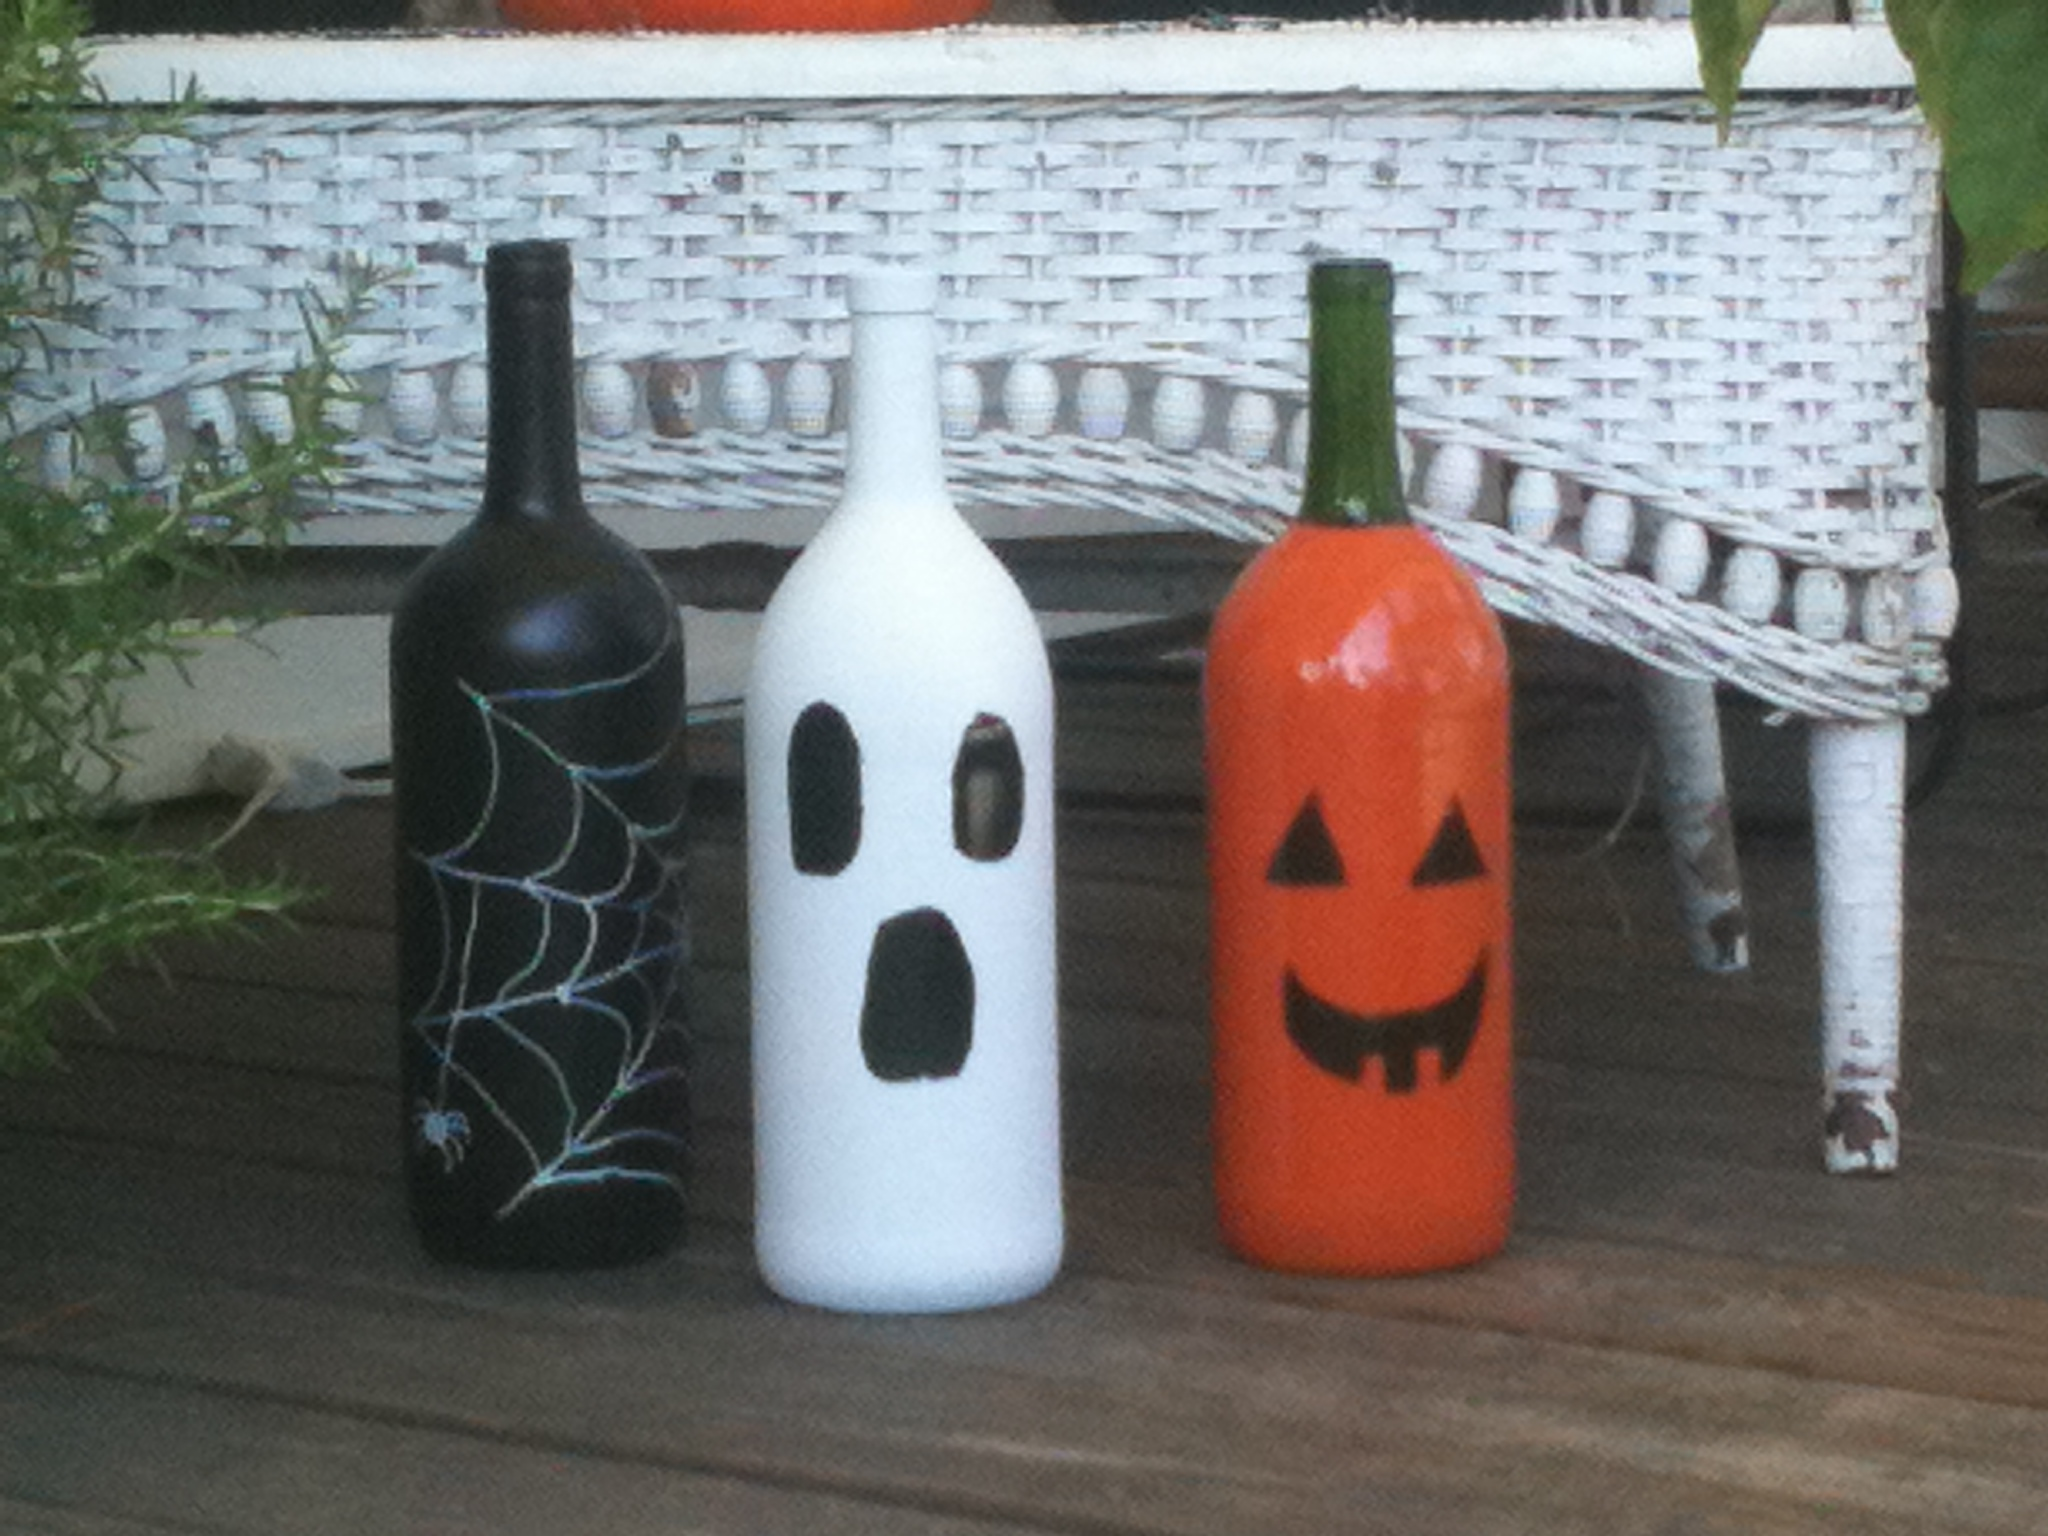 diy halloween decorations - Homemade Halloween Party Decorations